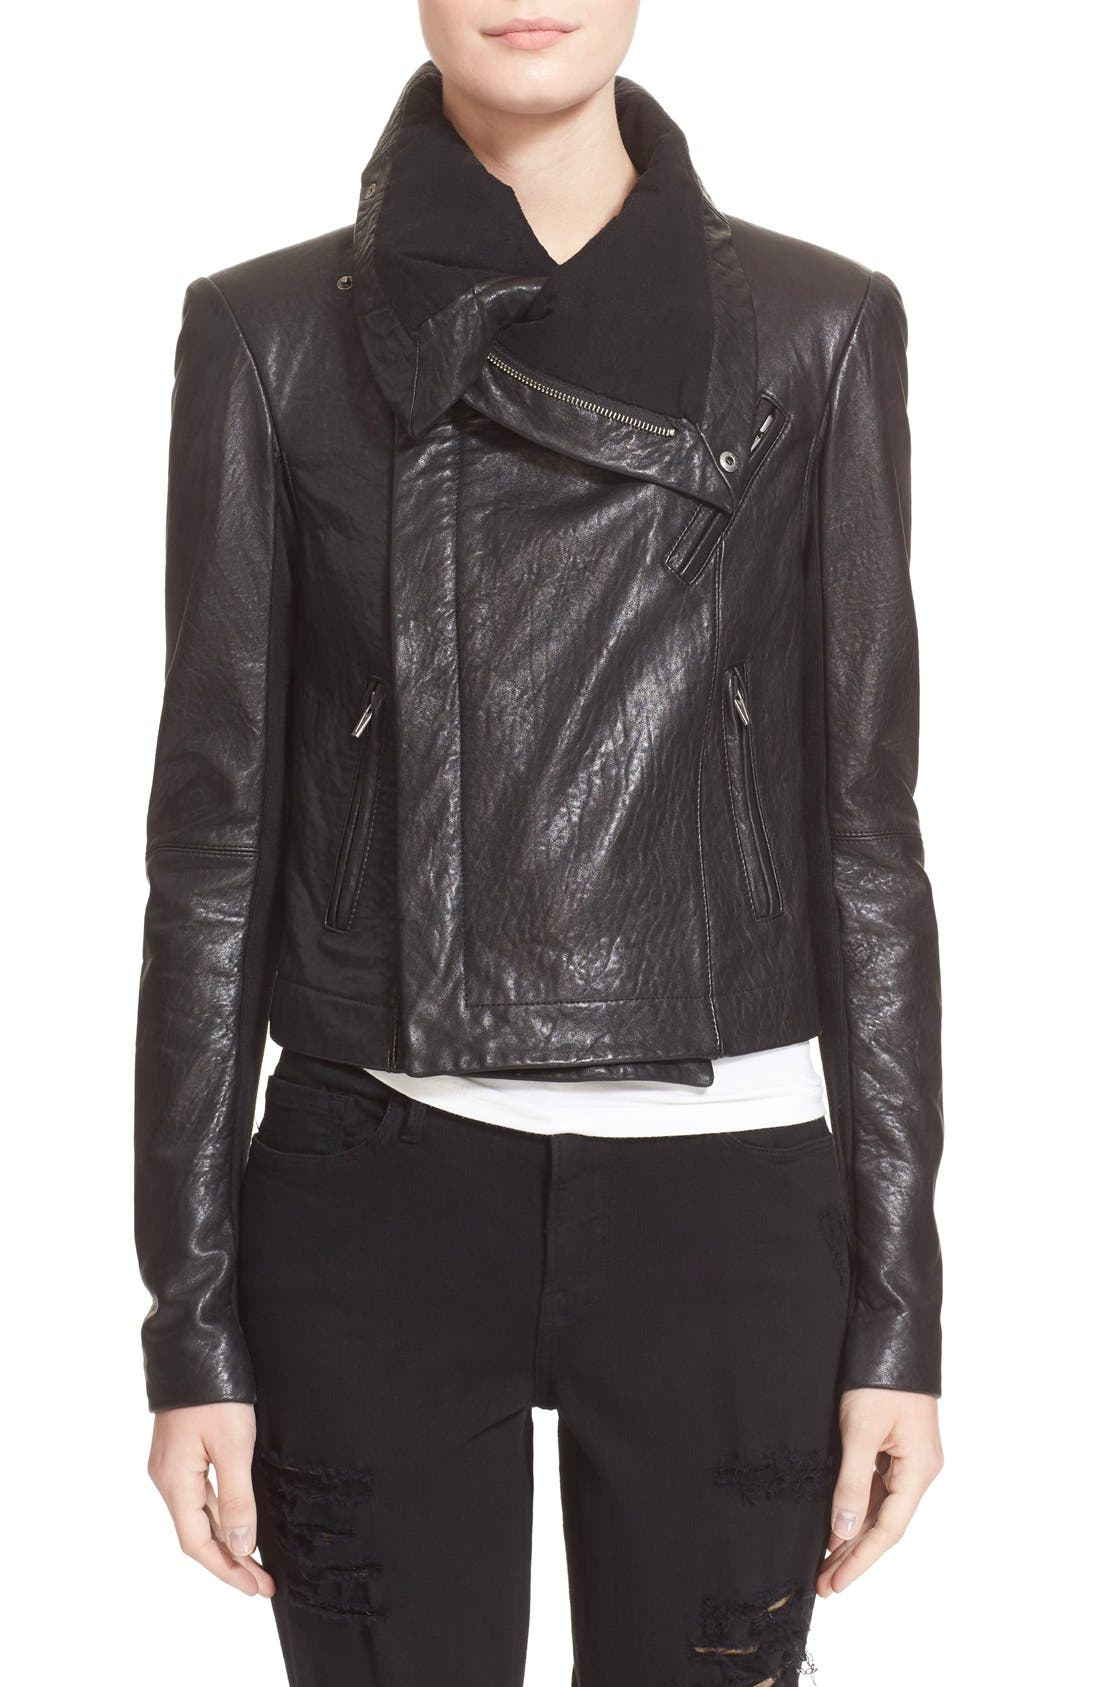 VEDA 'Max Classic' Leather Jacket, Main, color, 001